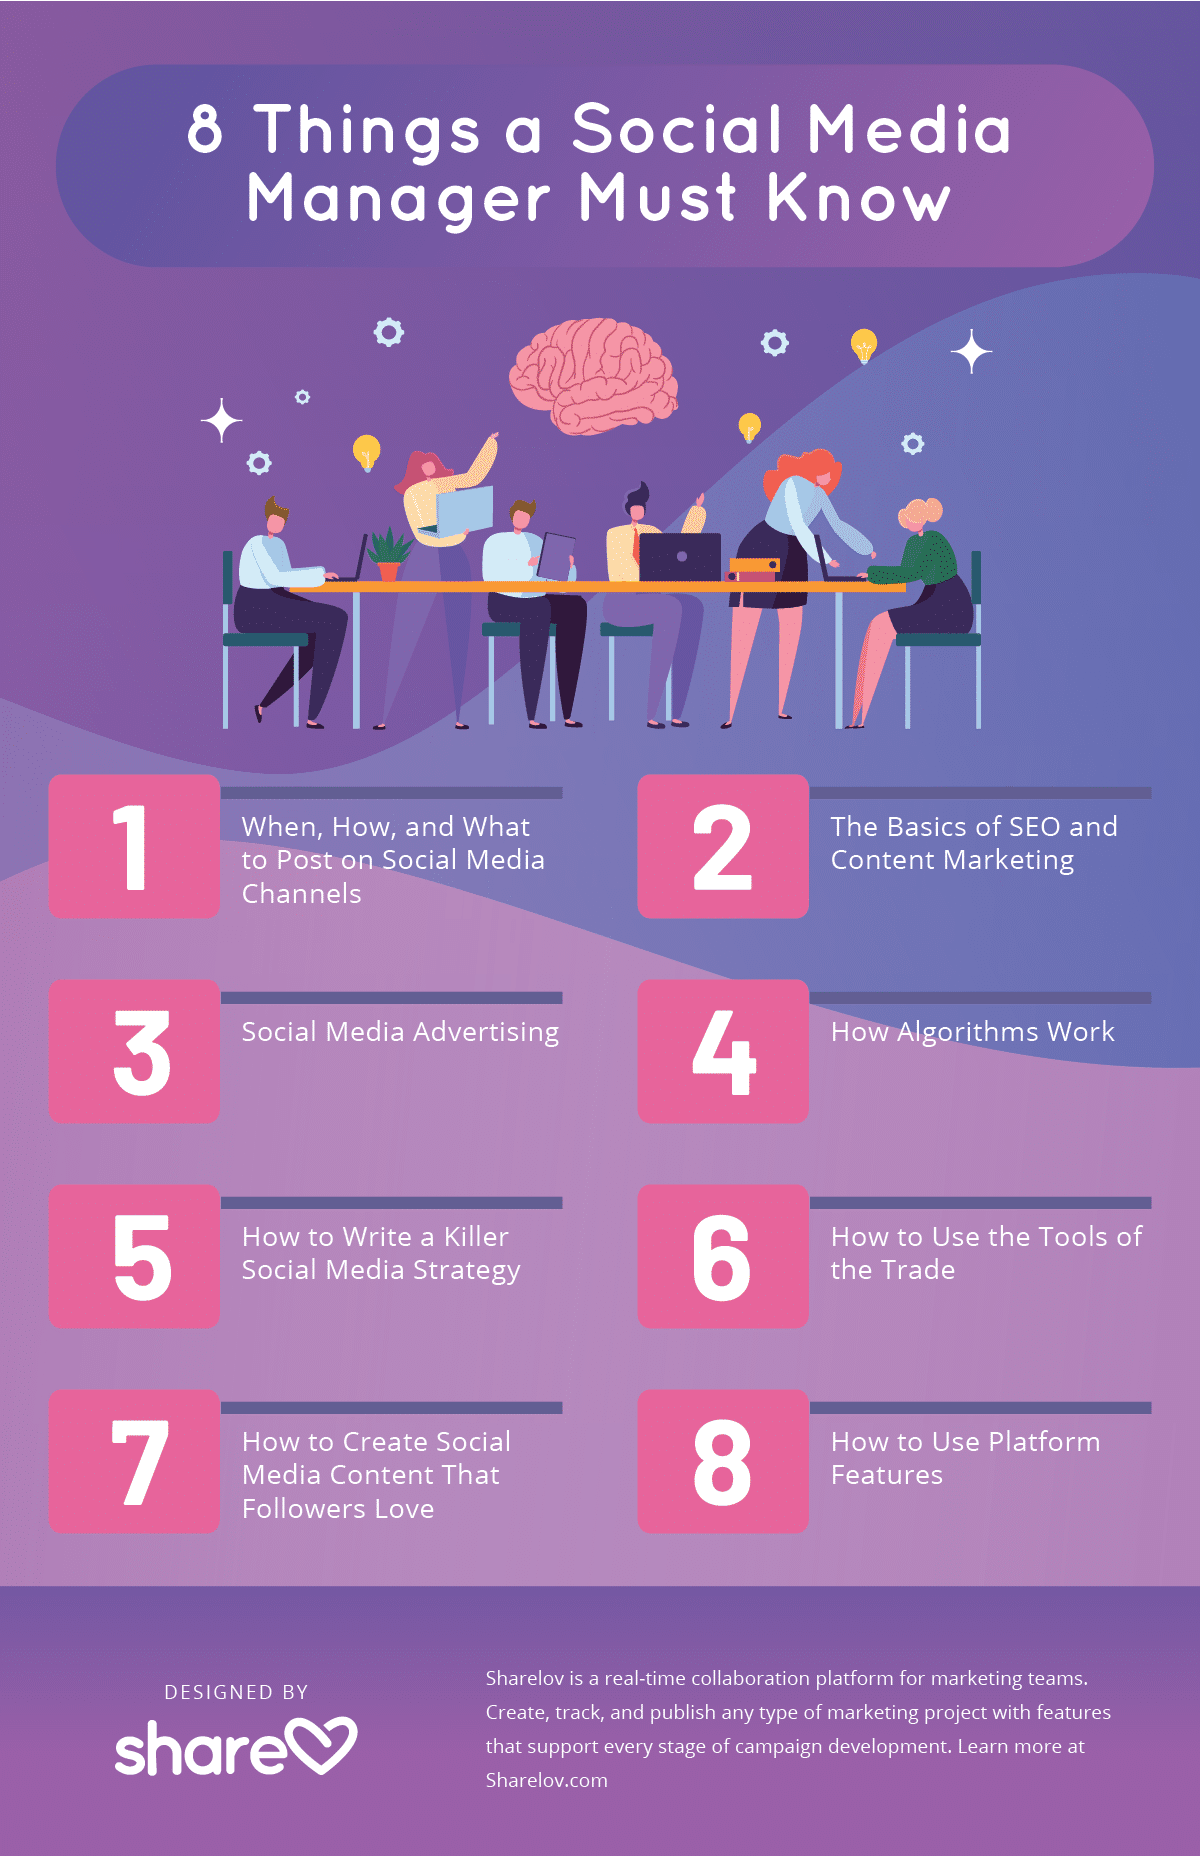 8 Things a Social Media Manager Must Know infographic